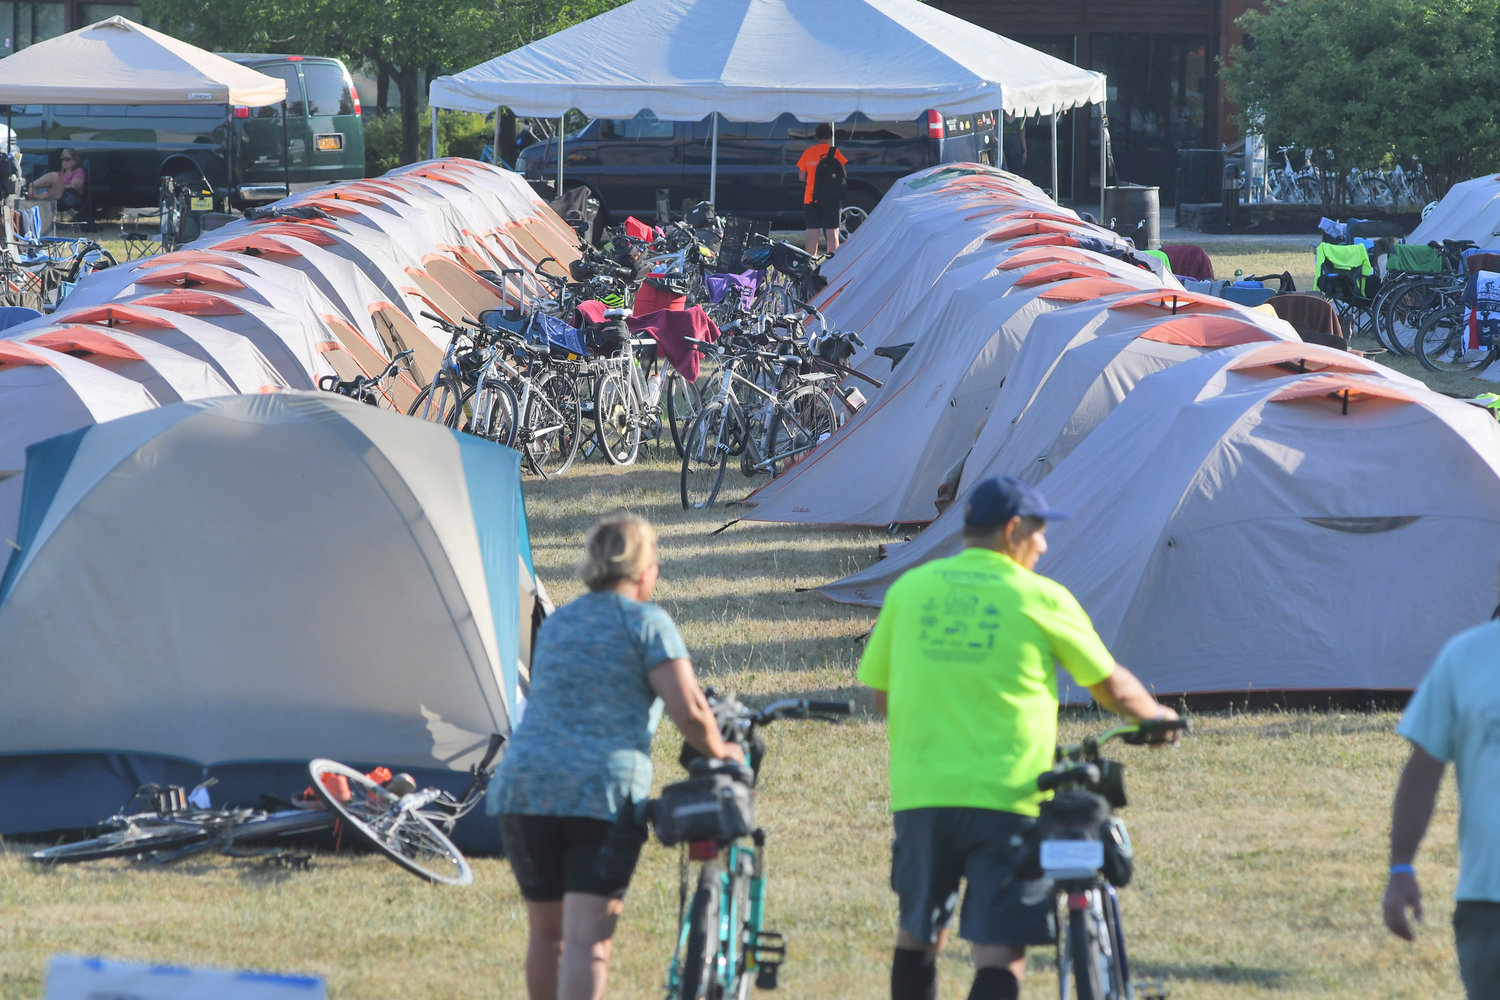 TENT CITY — Riders on the Cycle the Erie Canal Bike Tour will camp out on Fort Stanwix's lawn on Thursday night. Aftershopping at Rome's stores, patronizing its restaurants and eating breakfast at the Y, riders will hit the road for Canajoharie Friday morning.